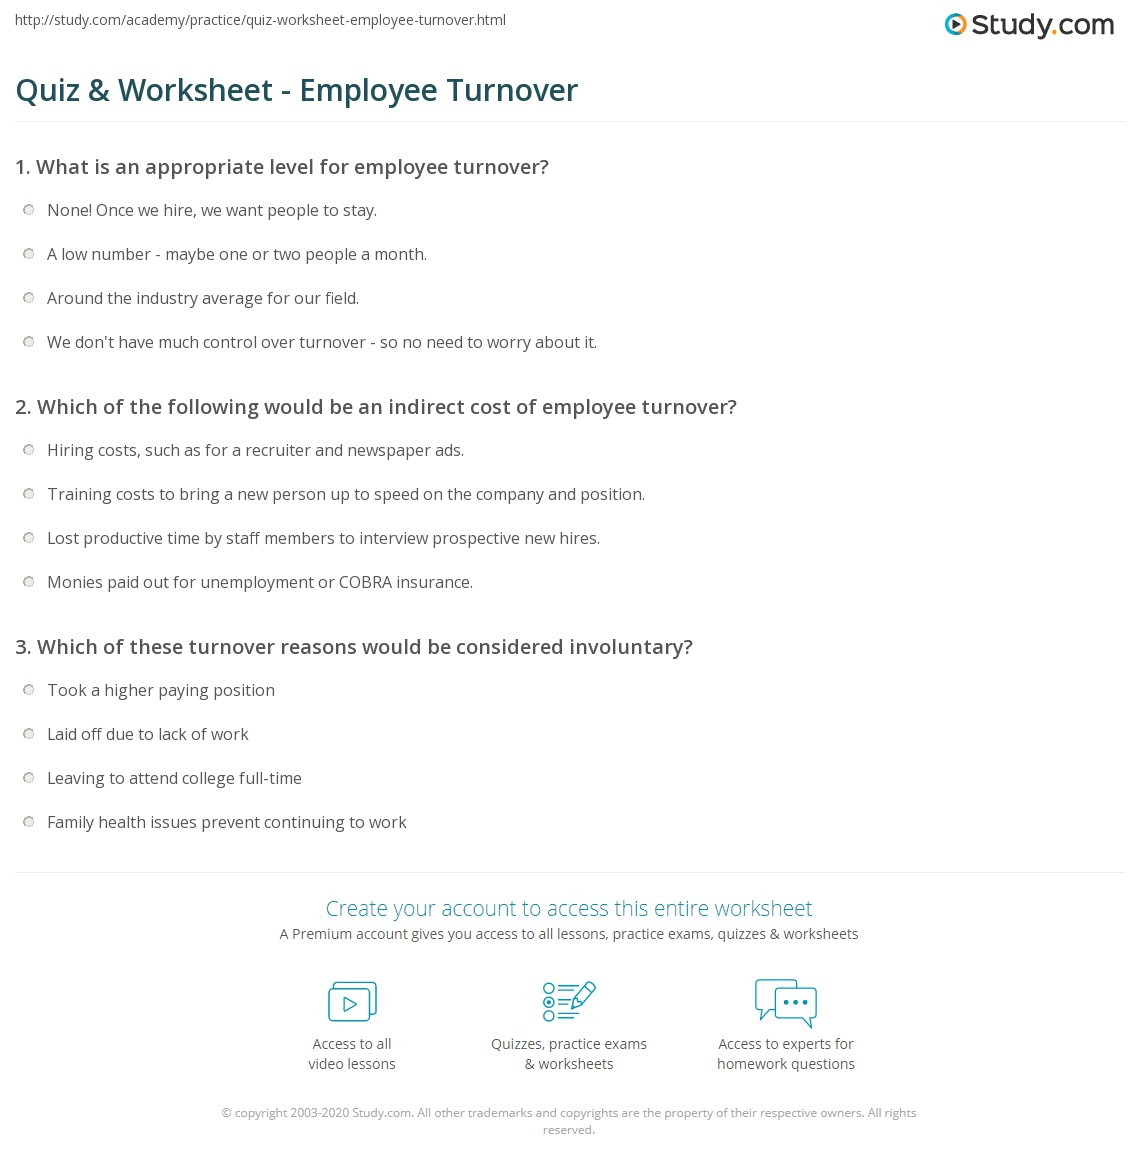 Quiz & Worksheet - Employee Turnover | Study.com